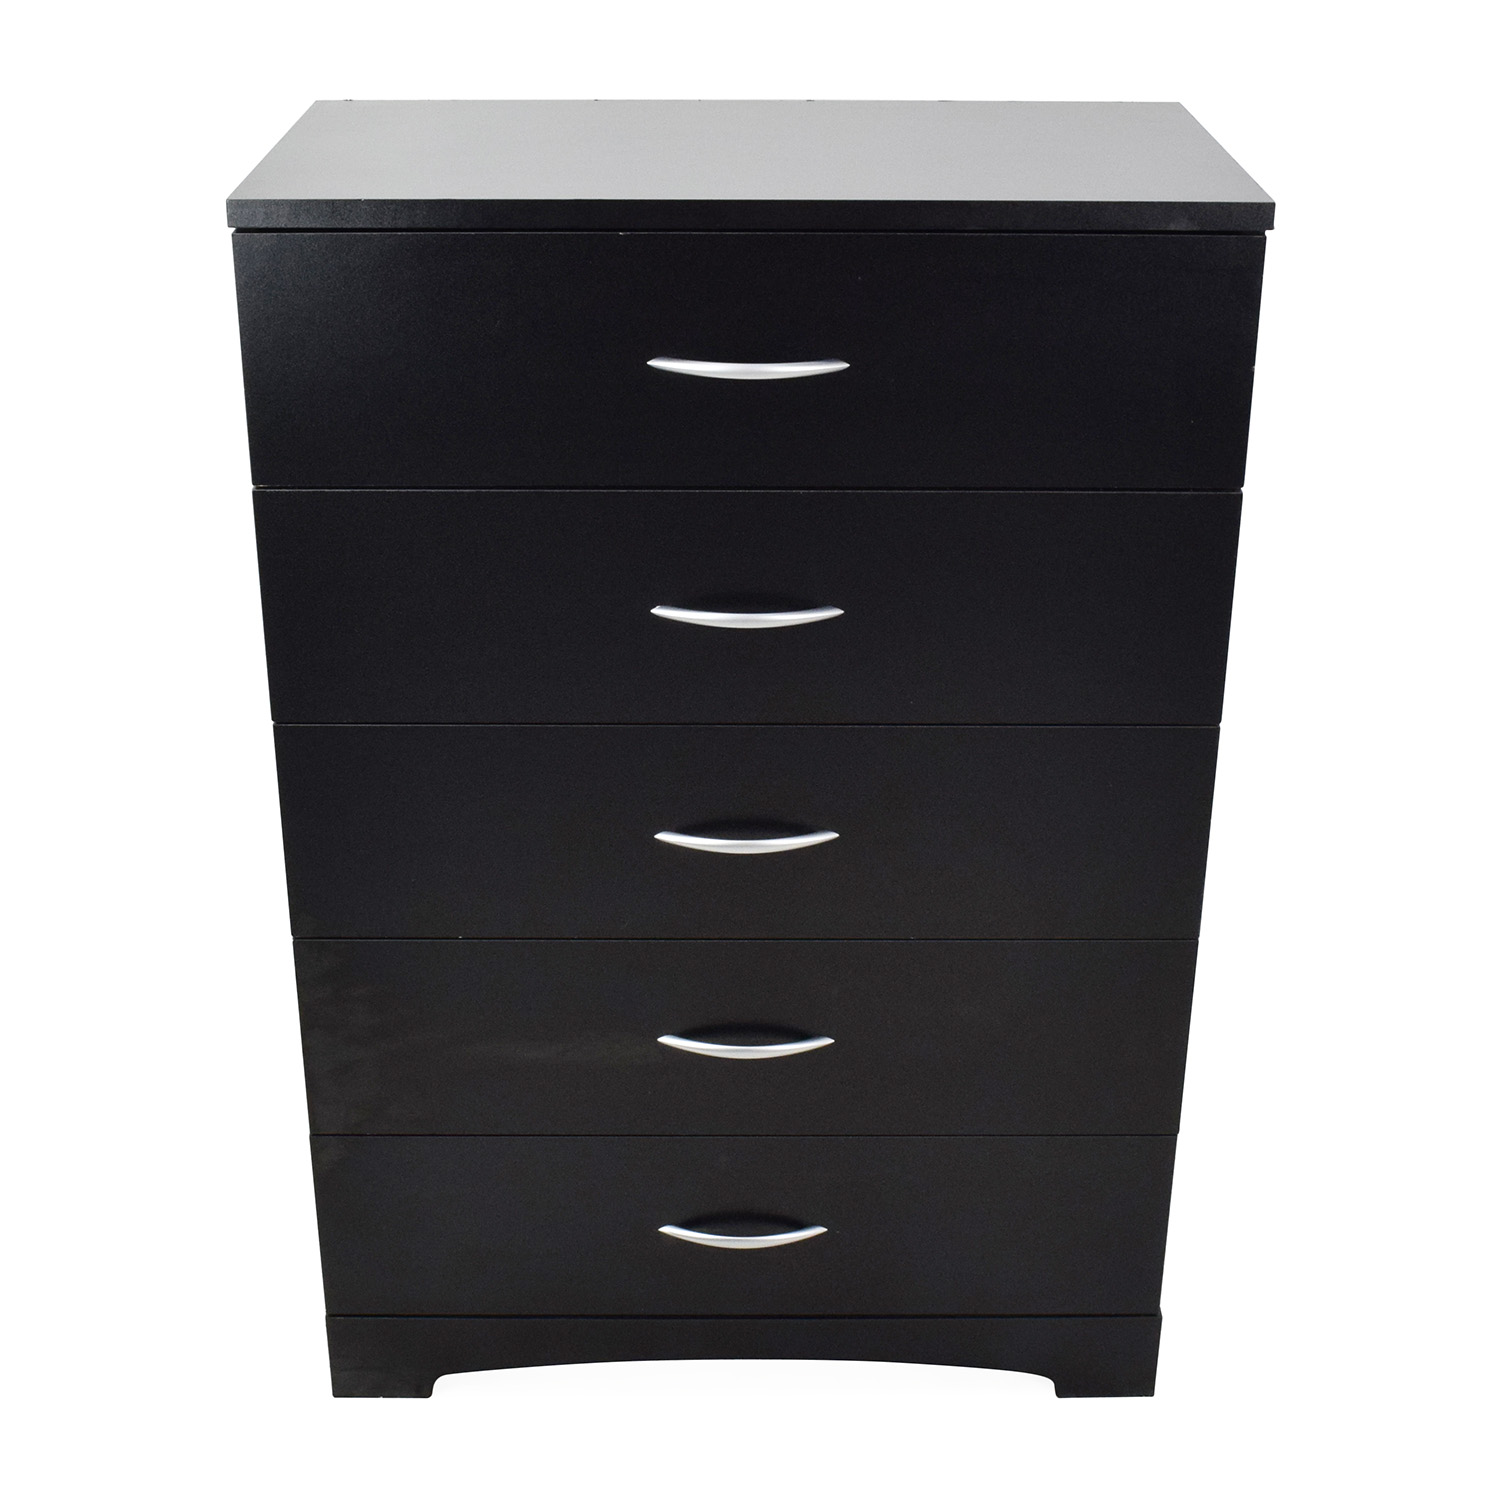 Black 5-Drawer Dresser dimensions